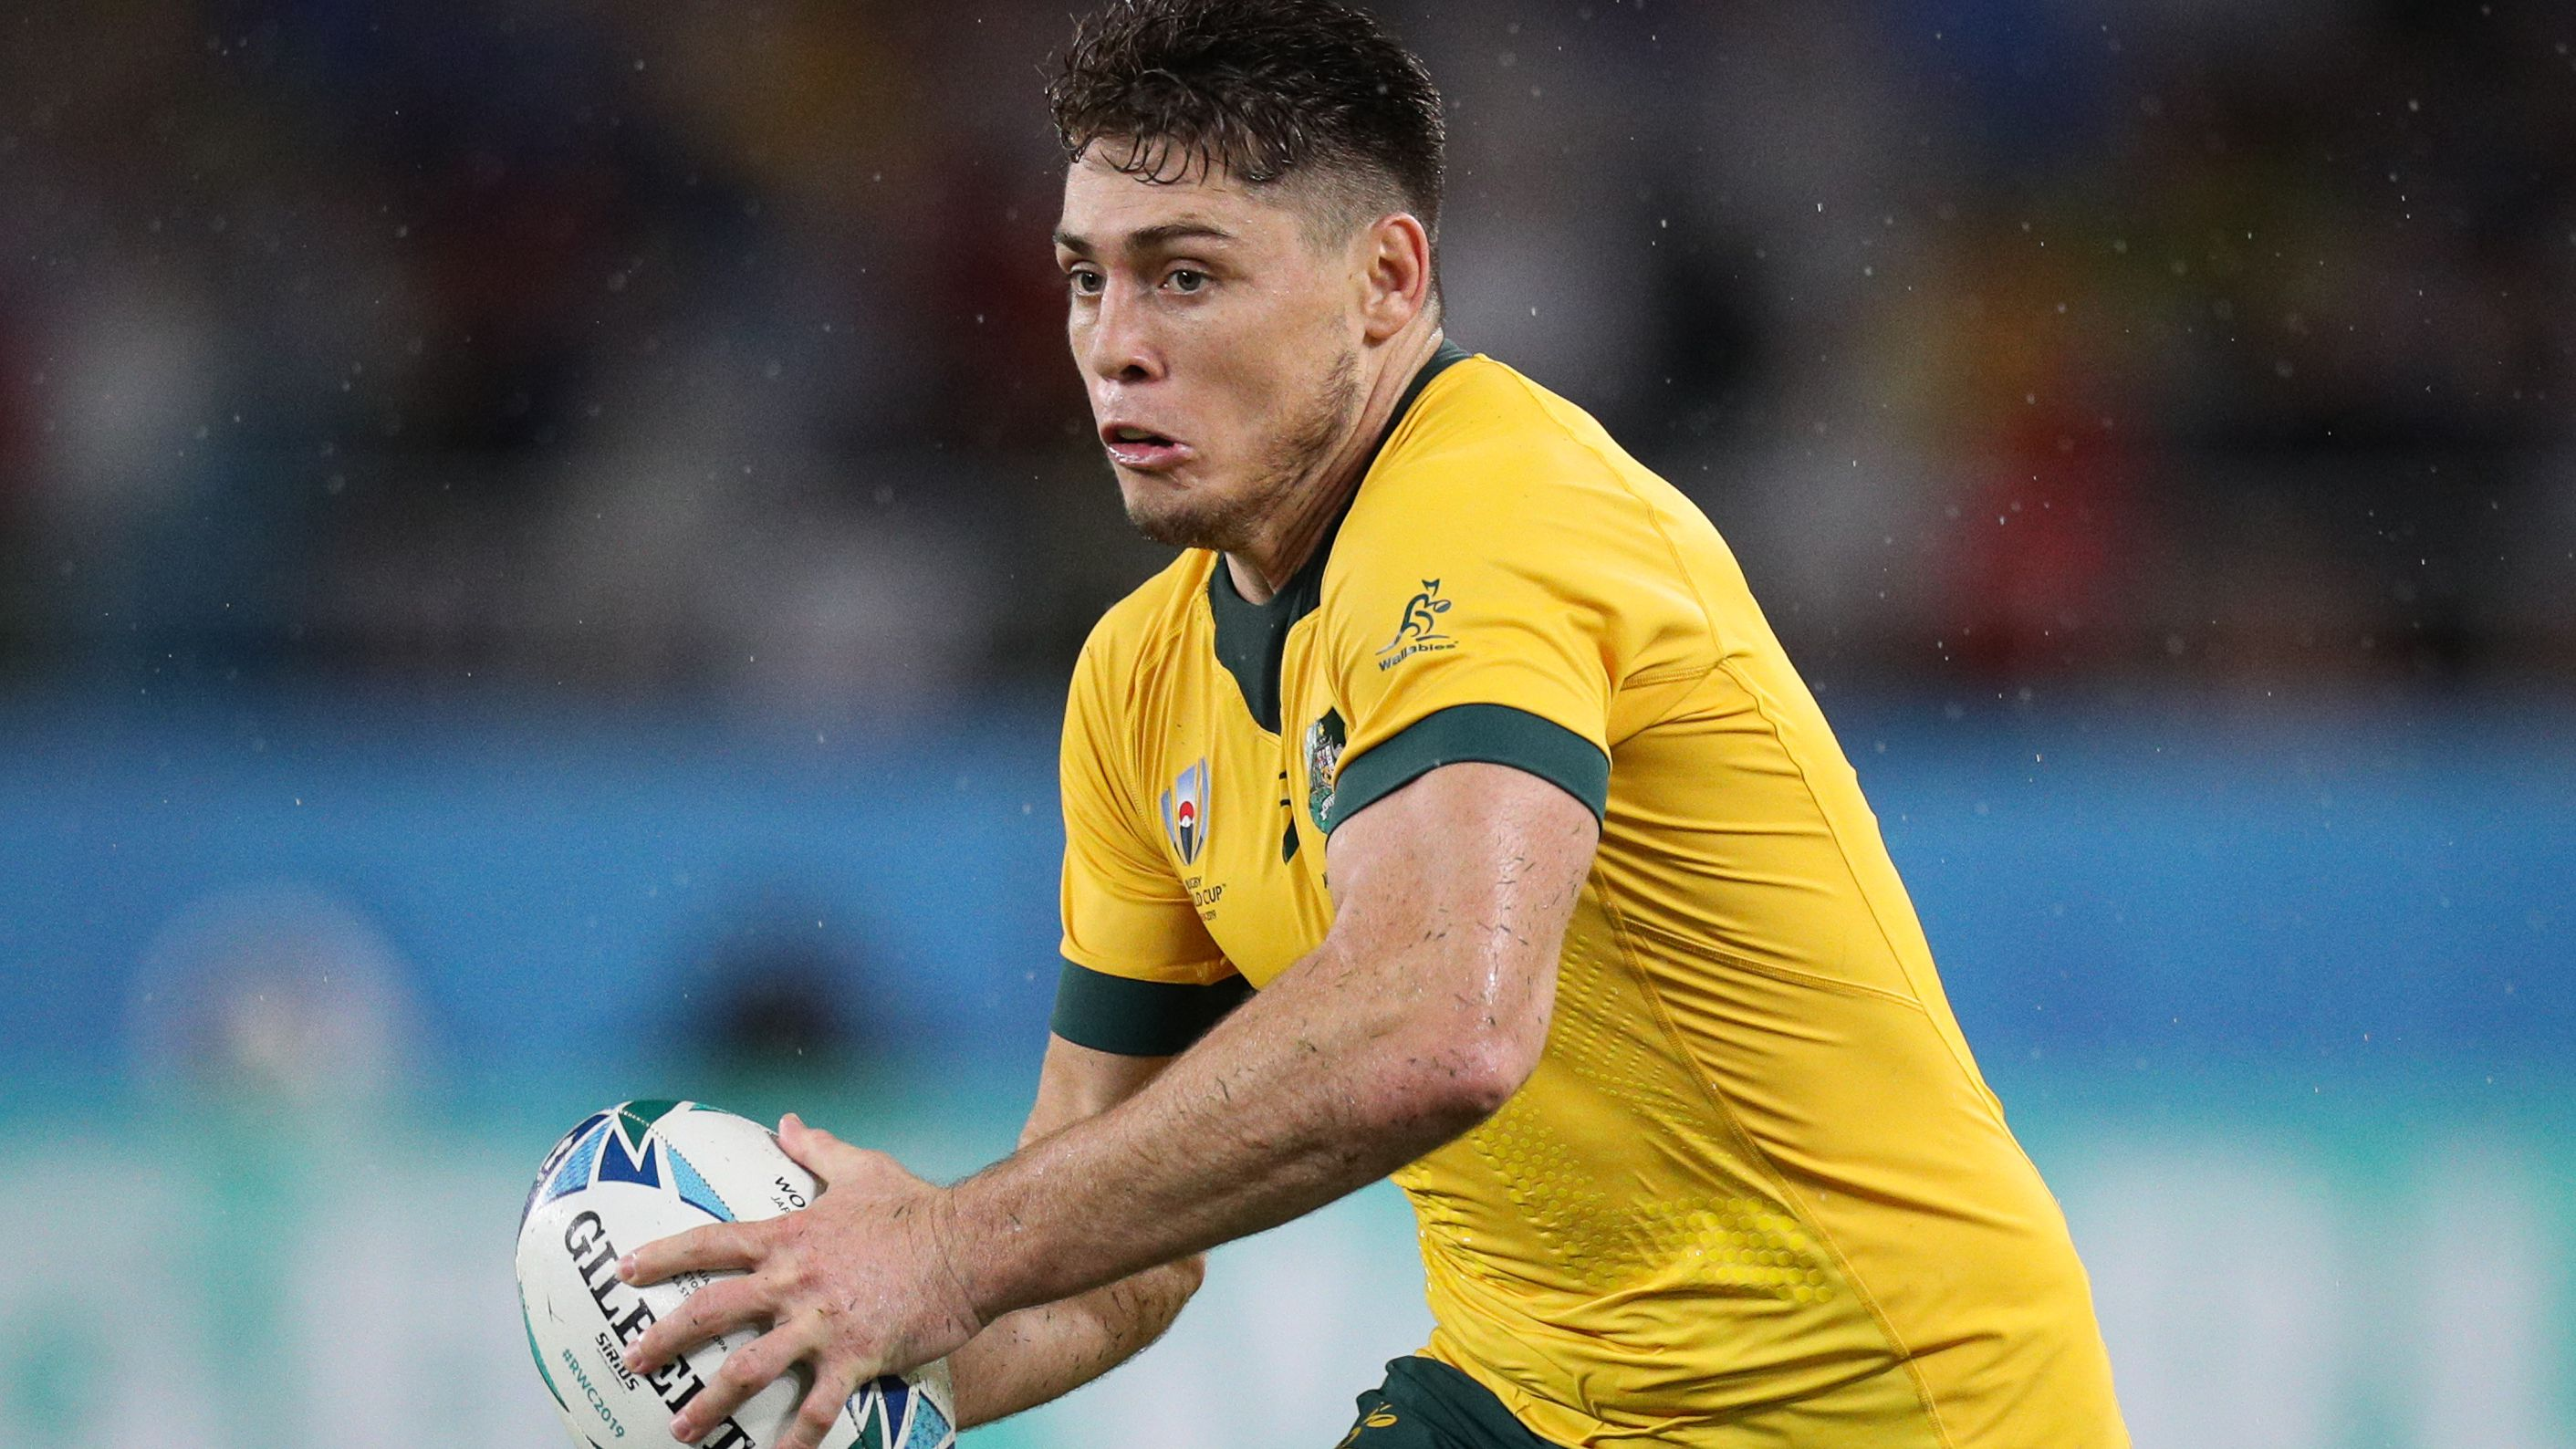 Wallabies superstar James O'Connor eyeing Super Rugby Aotearoa switch